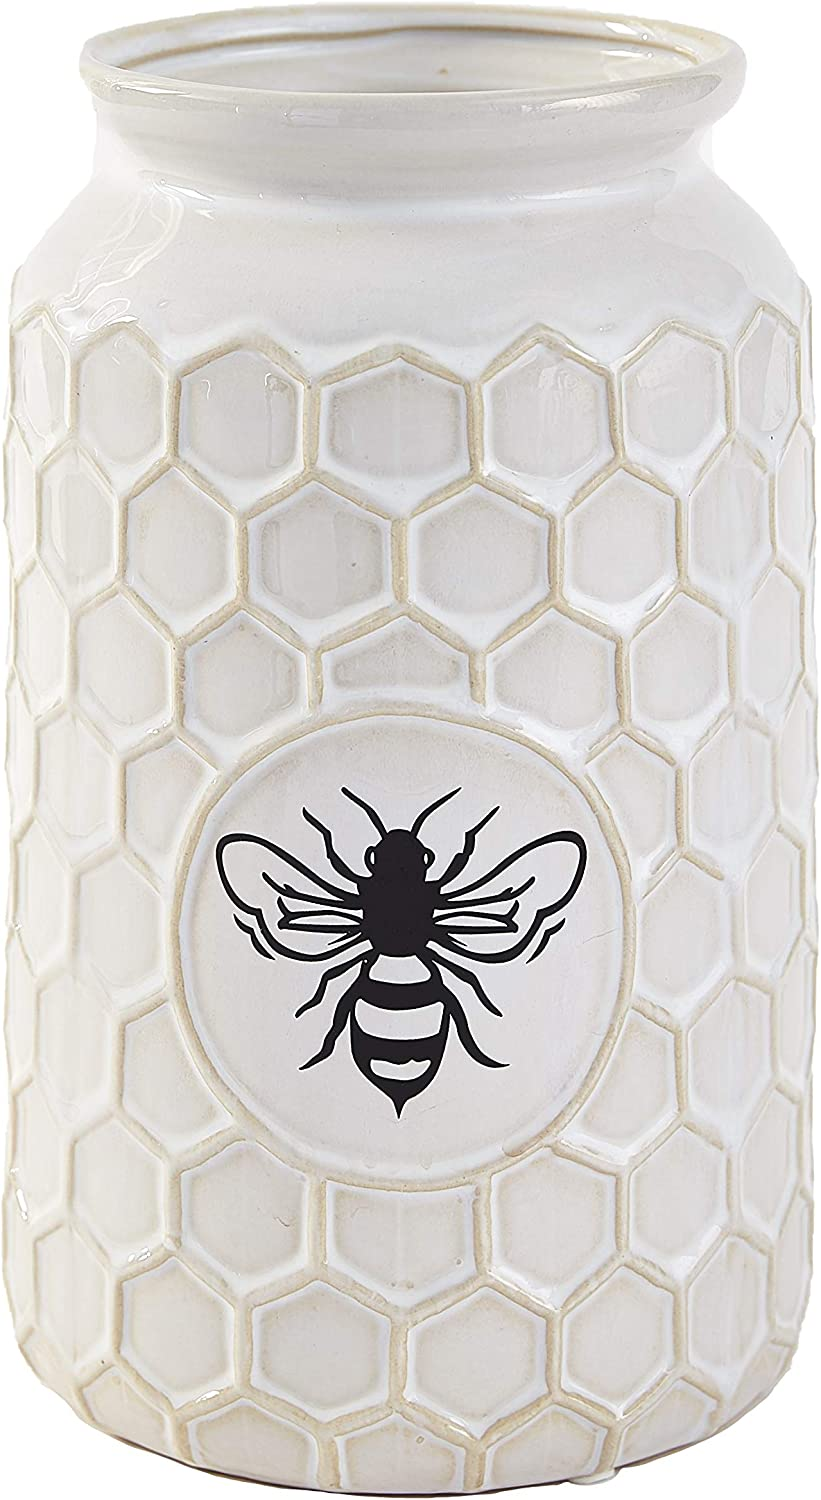 The Lakeside Collection Ceramic OFFer Honeycomb New product! New type with Texture Hone Vase